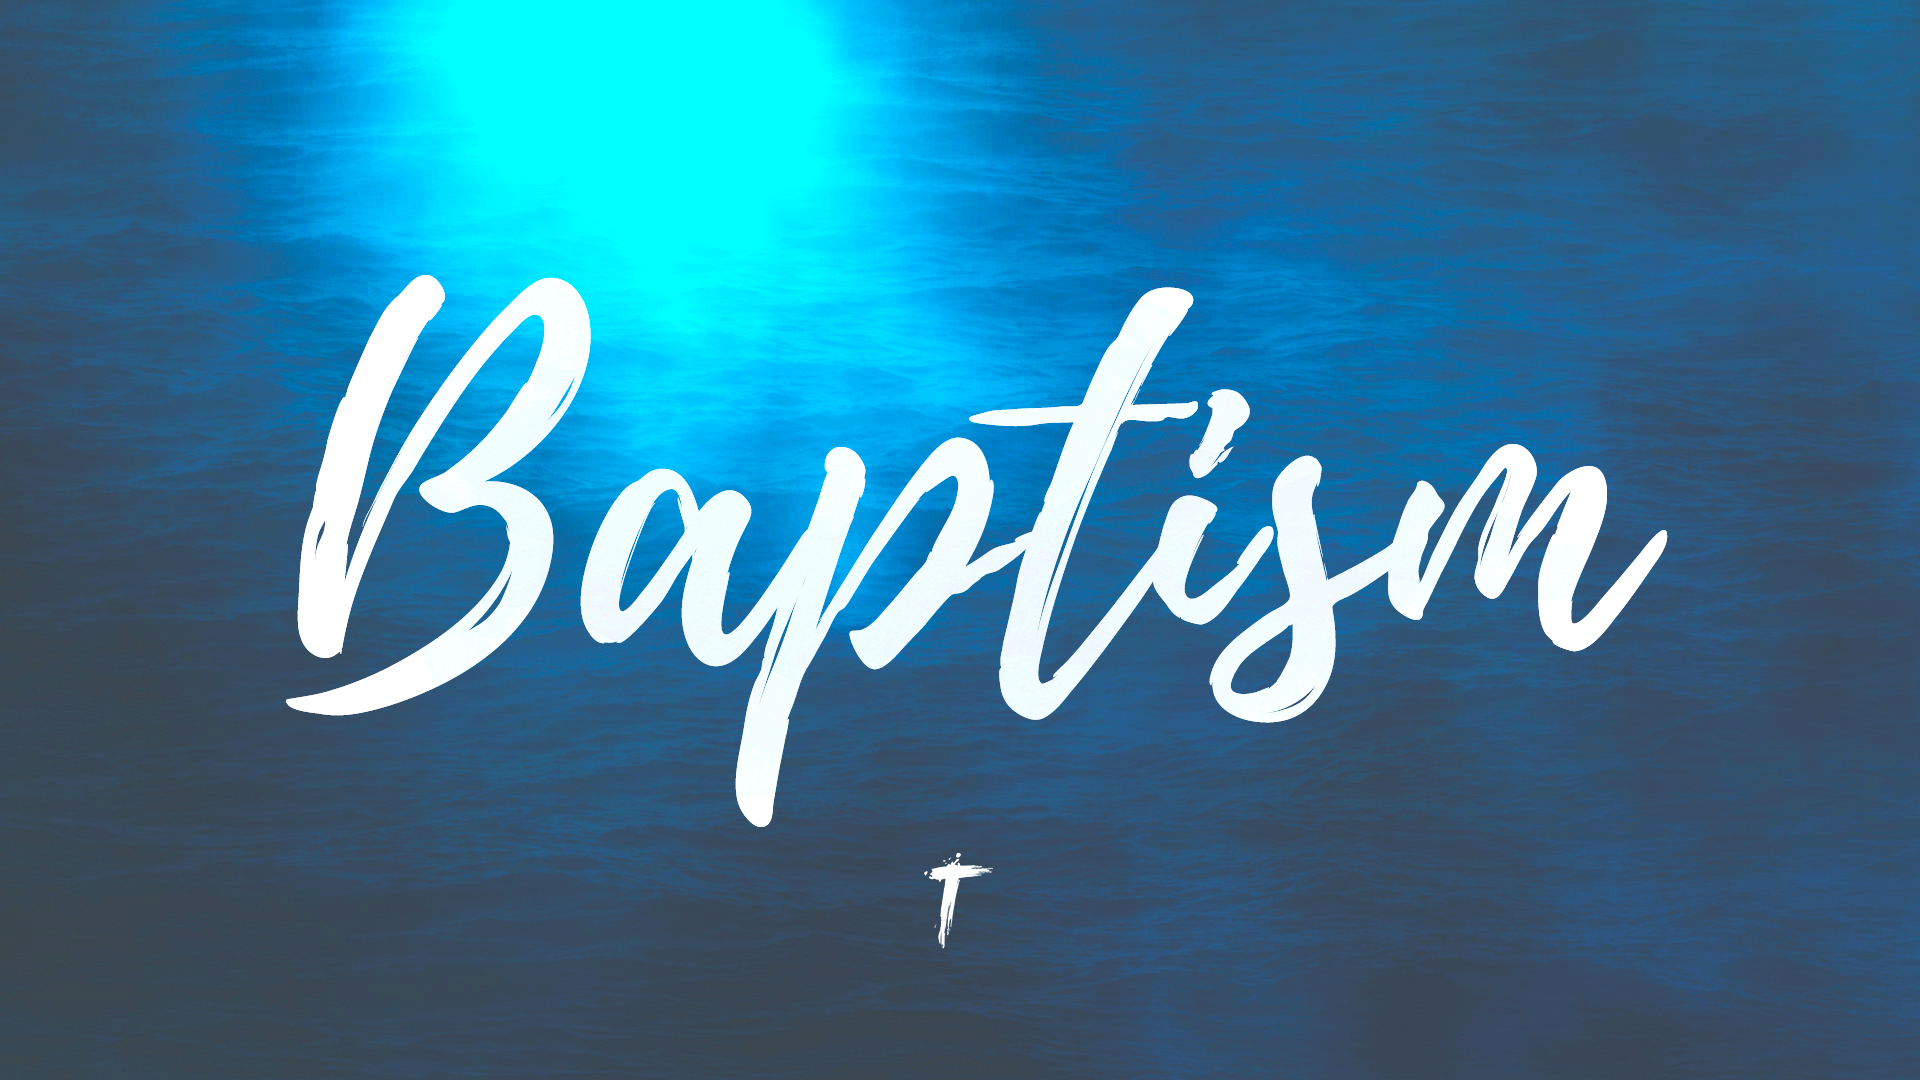 BAPTISMS - Thinking about getting baptized? Getting Baptized is one of the most significant experiences in our Christian life. If you want to know more, send us an email or come talk to us at church!